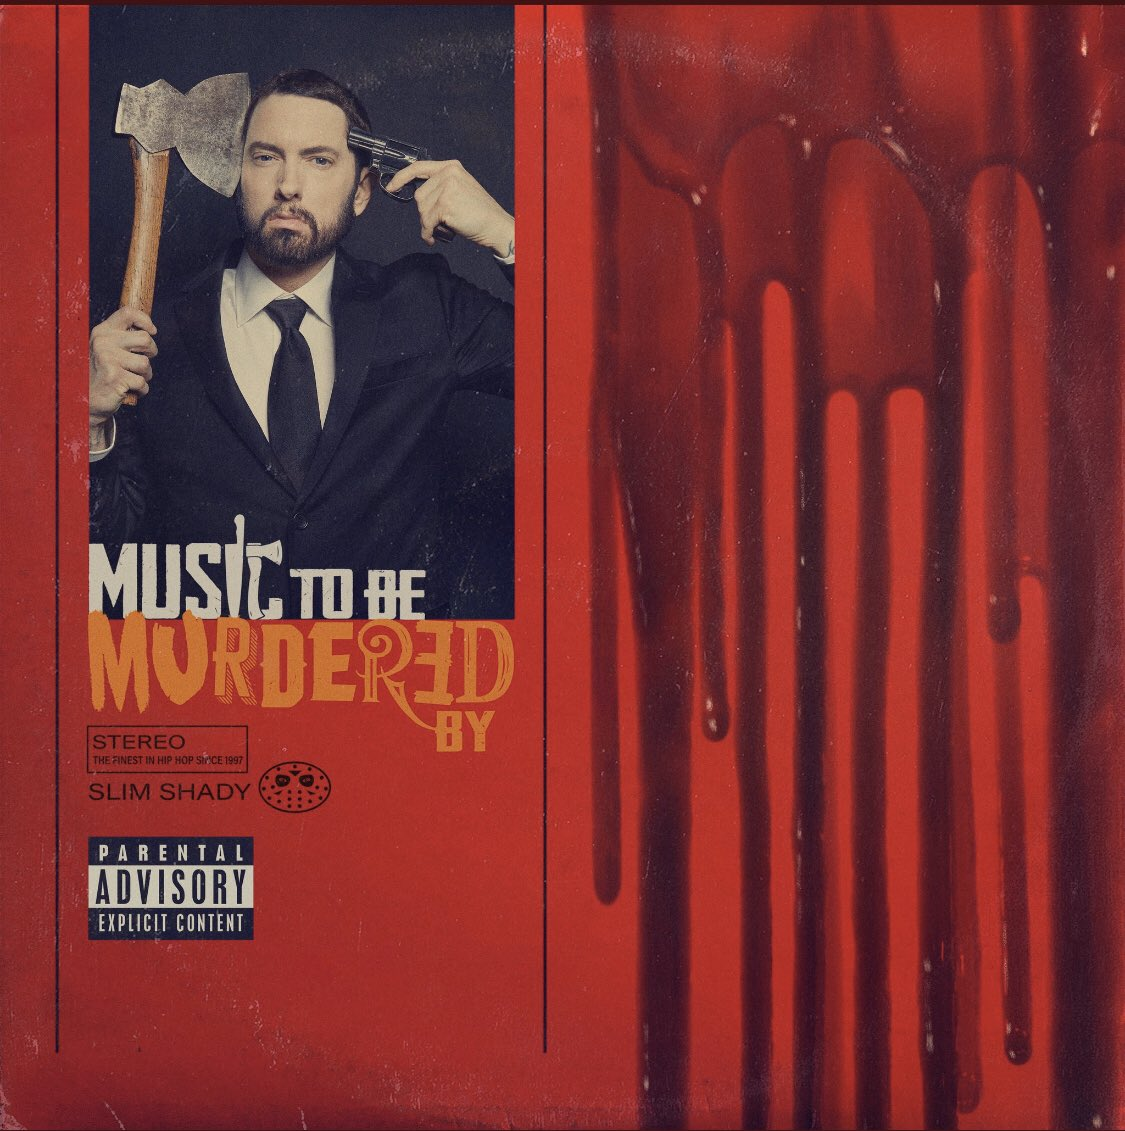 Why does Eminem look like Tom Green now